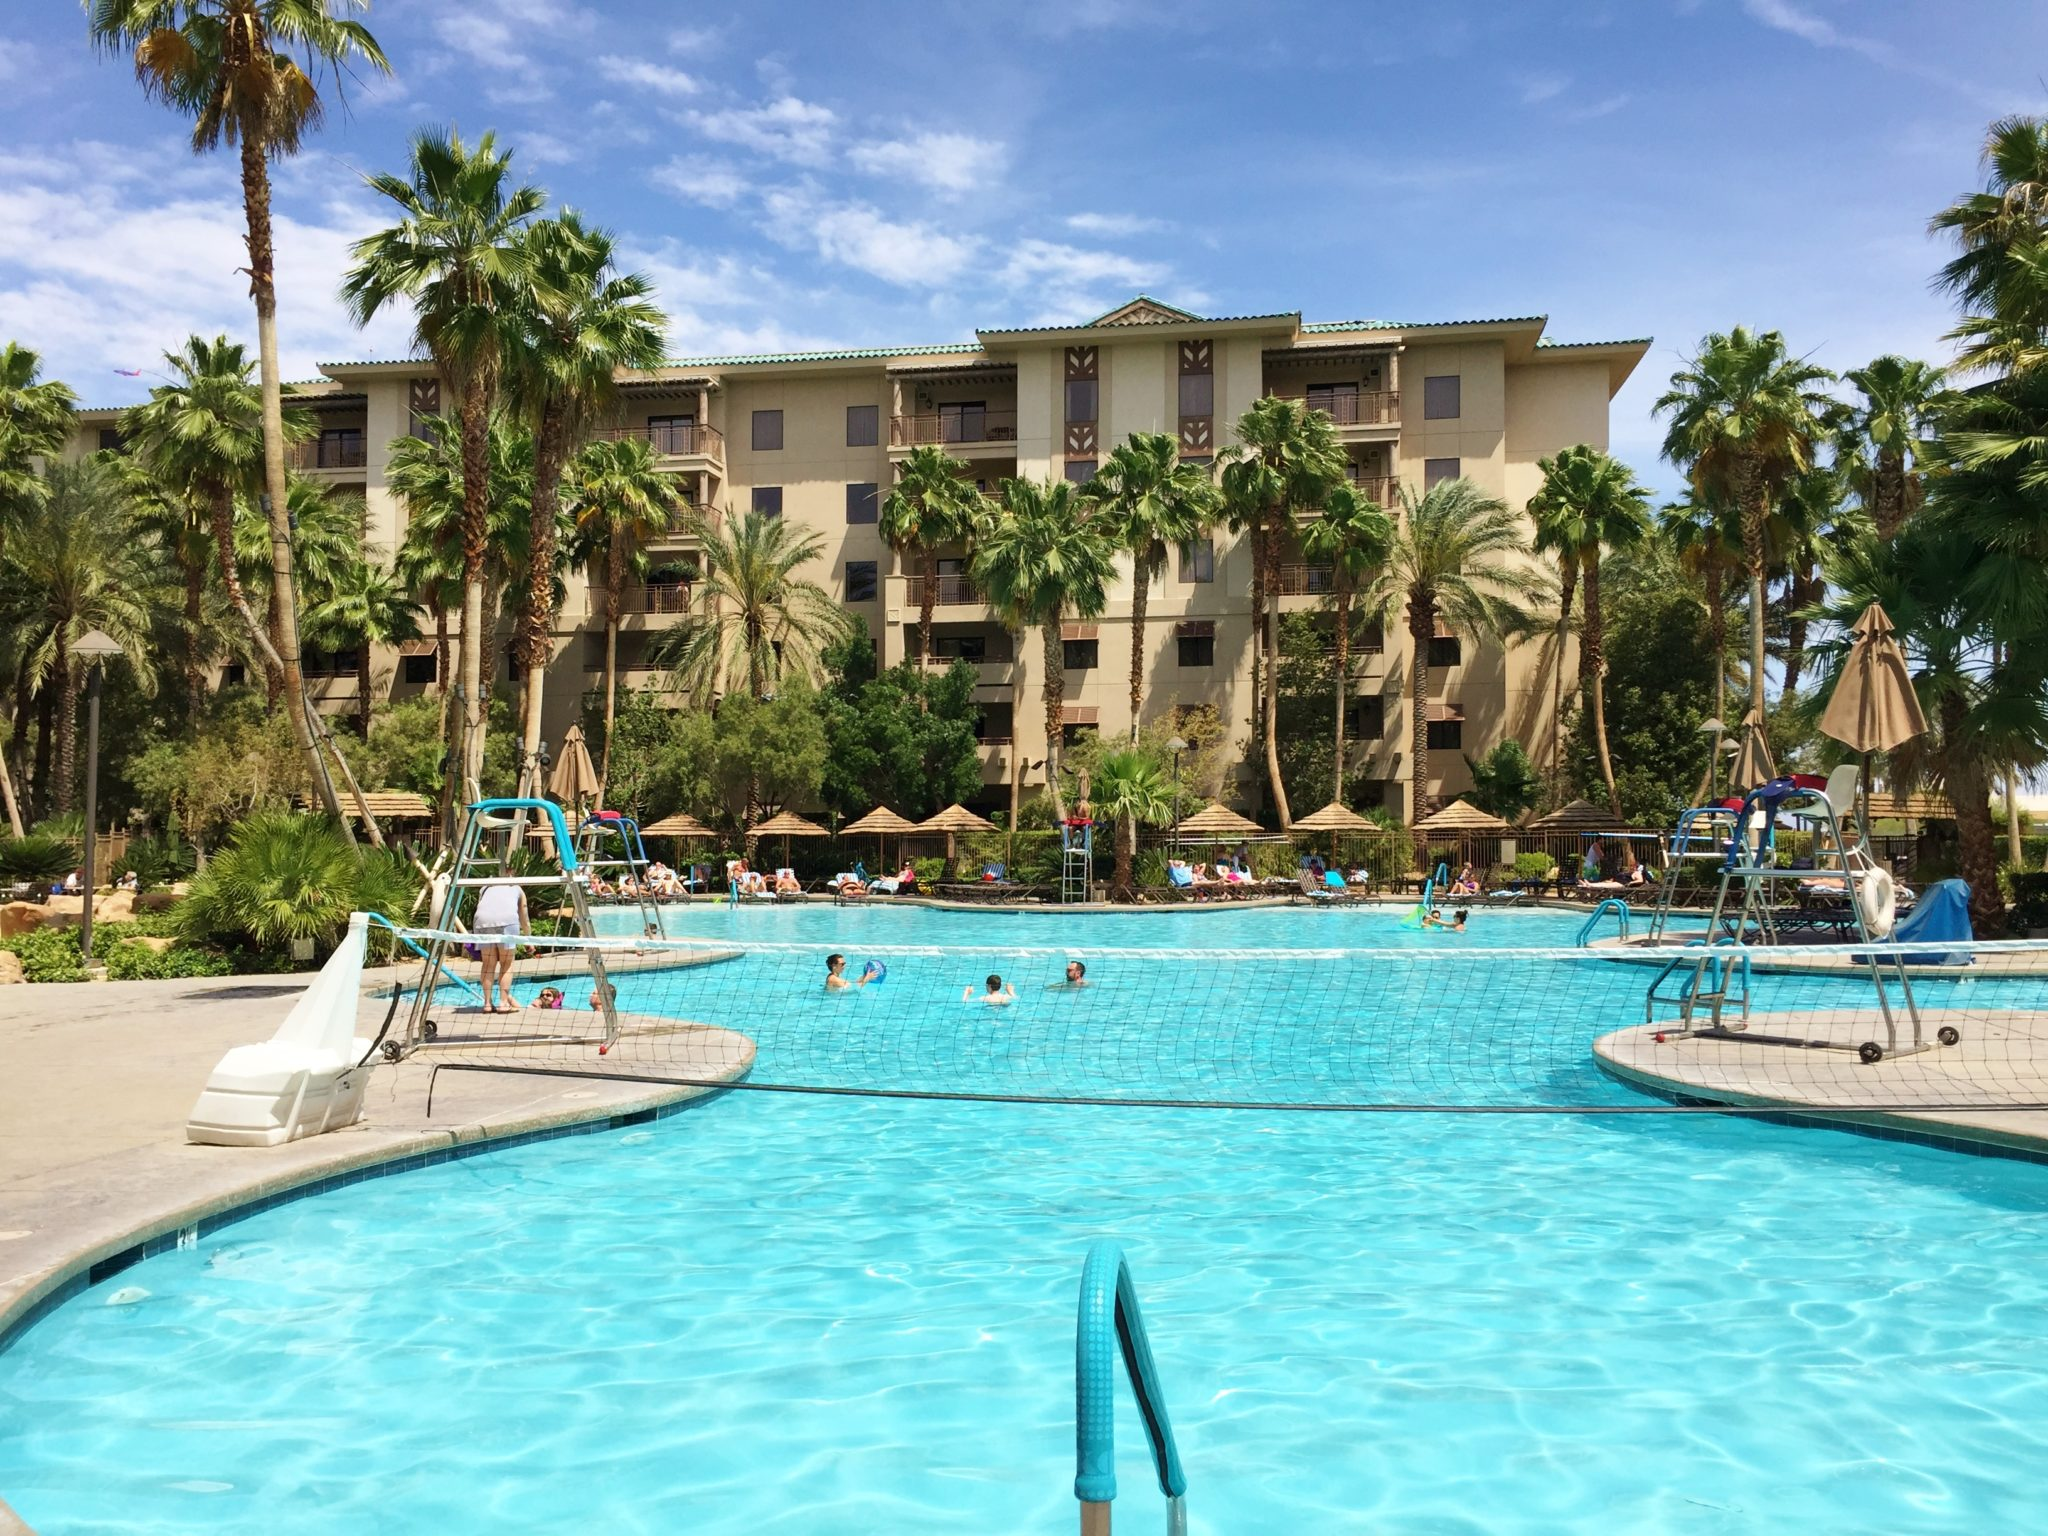 Review Tahiti Village Las Vegas…. Tahiti Village is our favourite place to stay in Las Vegas! Here's my top 5 reasons why we love to […]